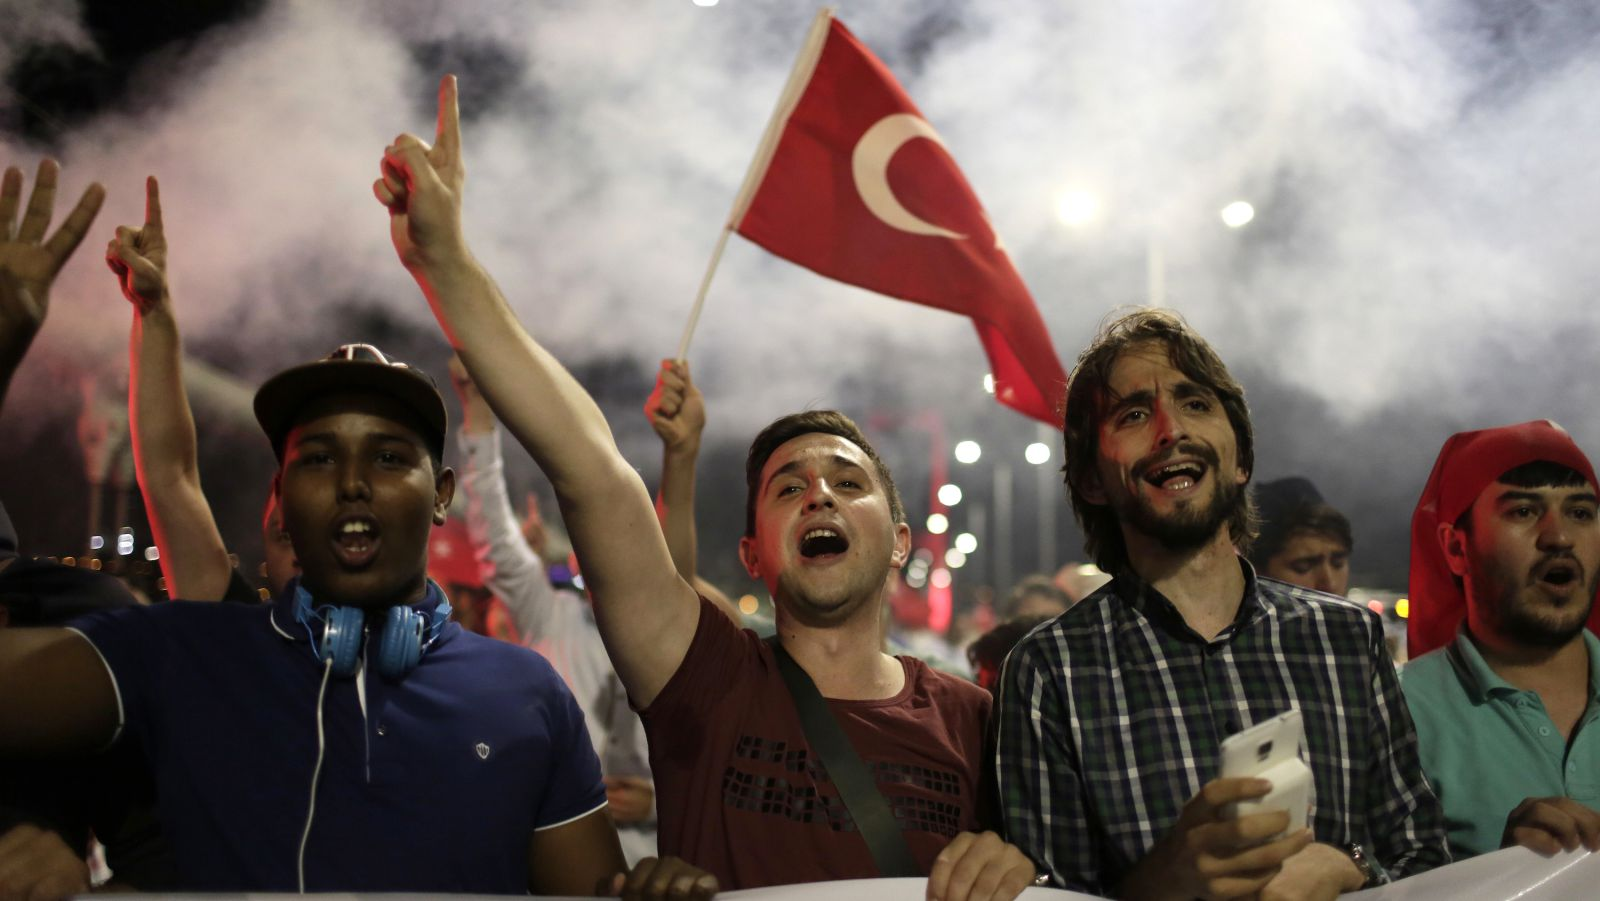 A kind of reverse-coup is underway in Turkey.(AP Photo/Petros Giannakouris)